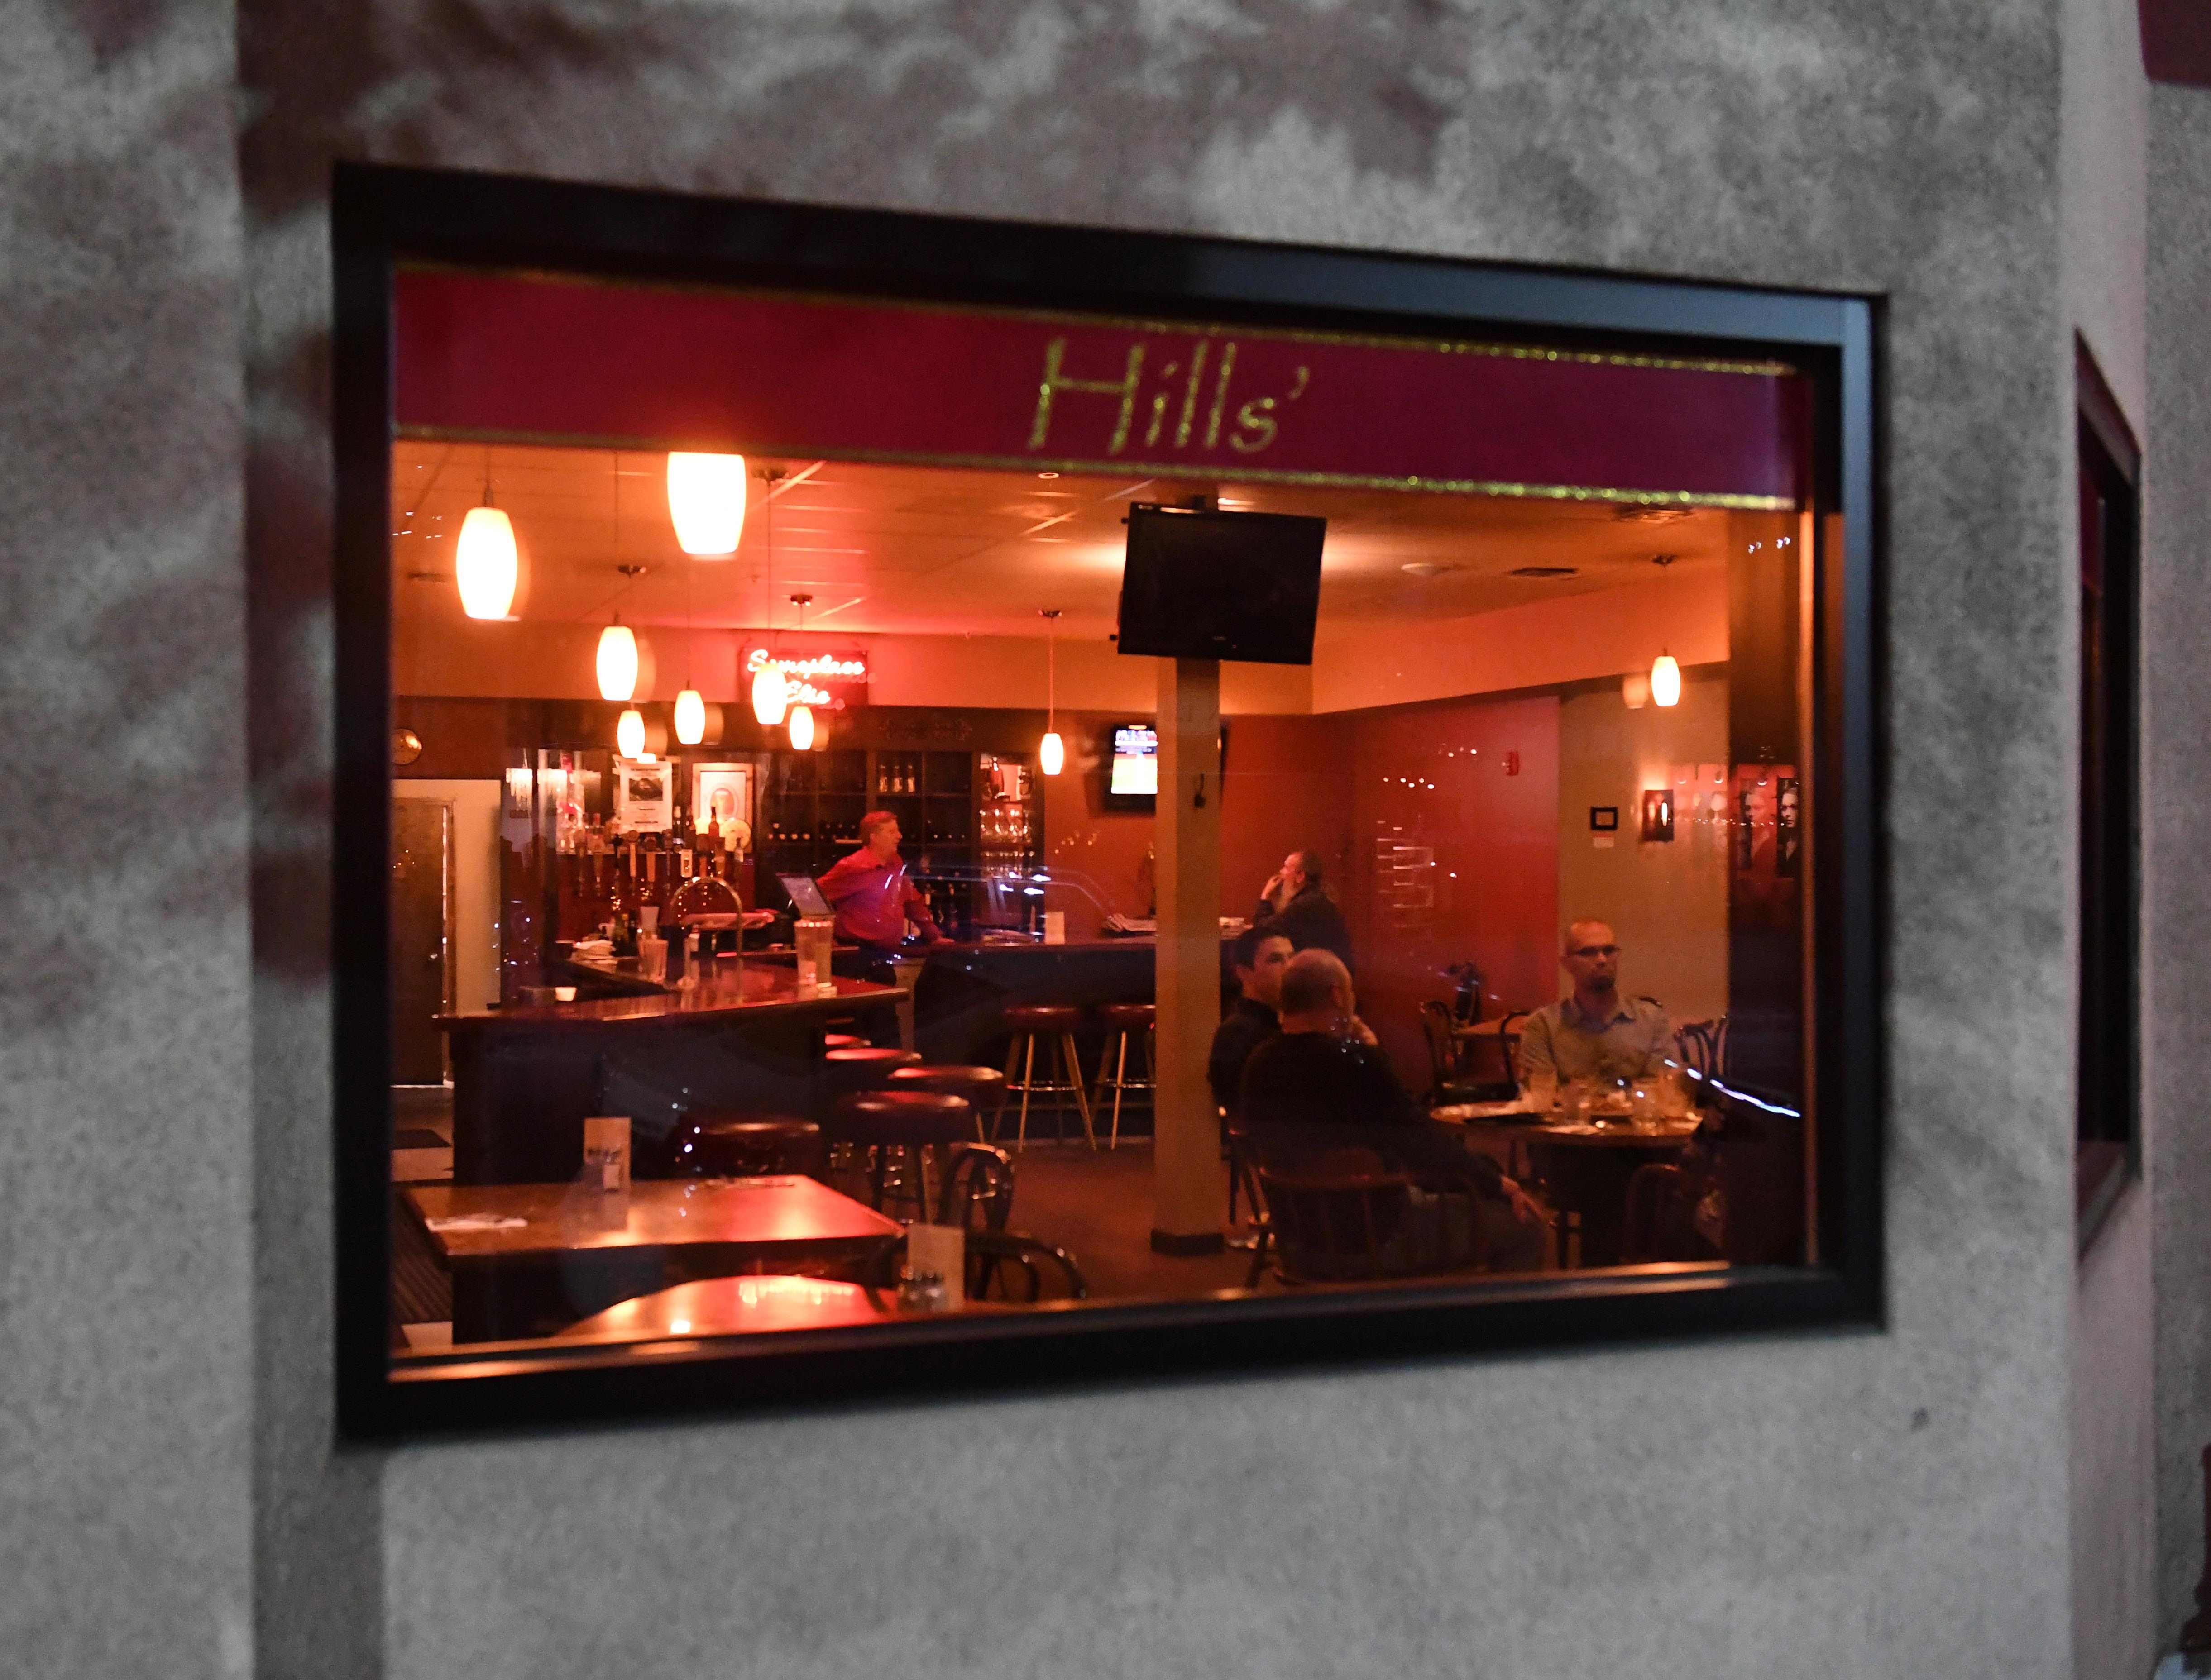 Hills Restaurant In Downtown Spokane Closes The Spokesman